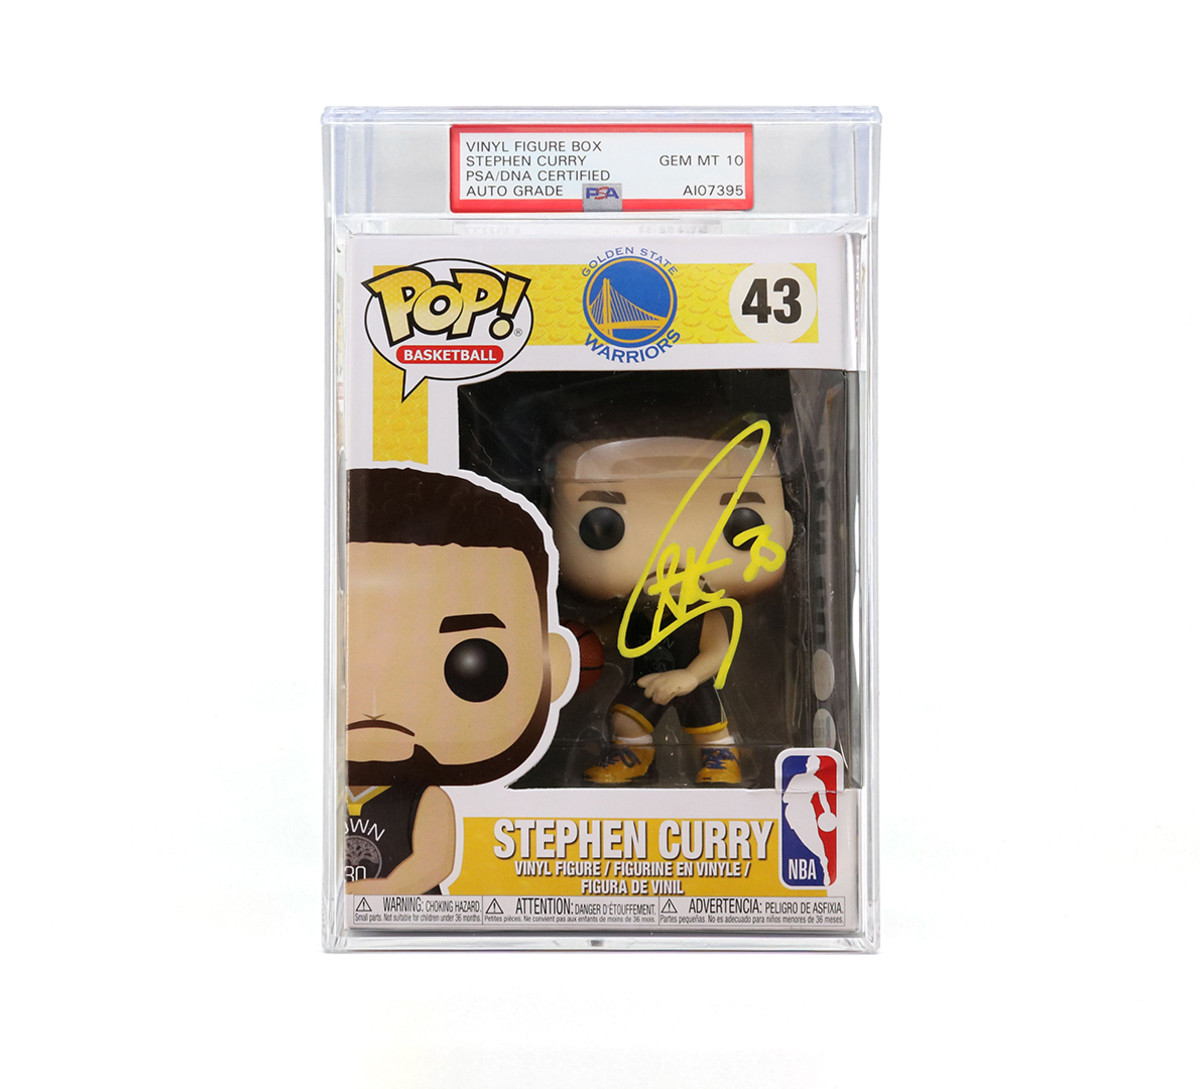 PSA-certified and encapsulated Steph Curry autographed Funko POP! vinyl figure box.